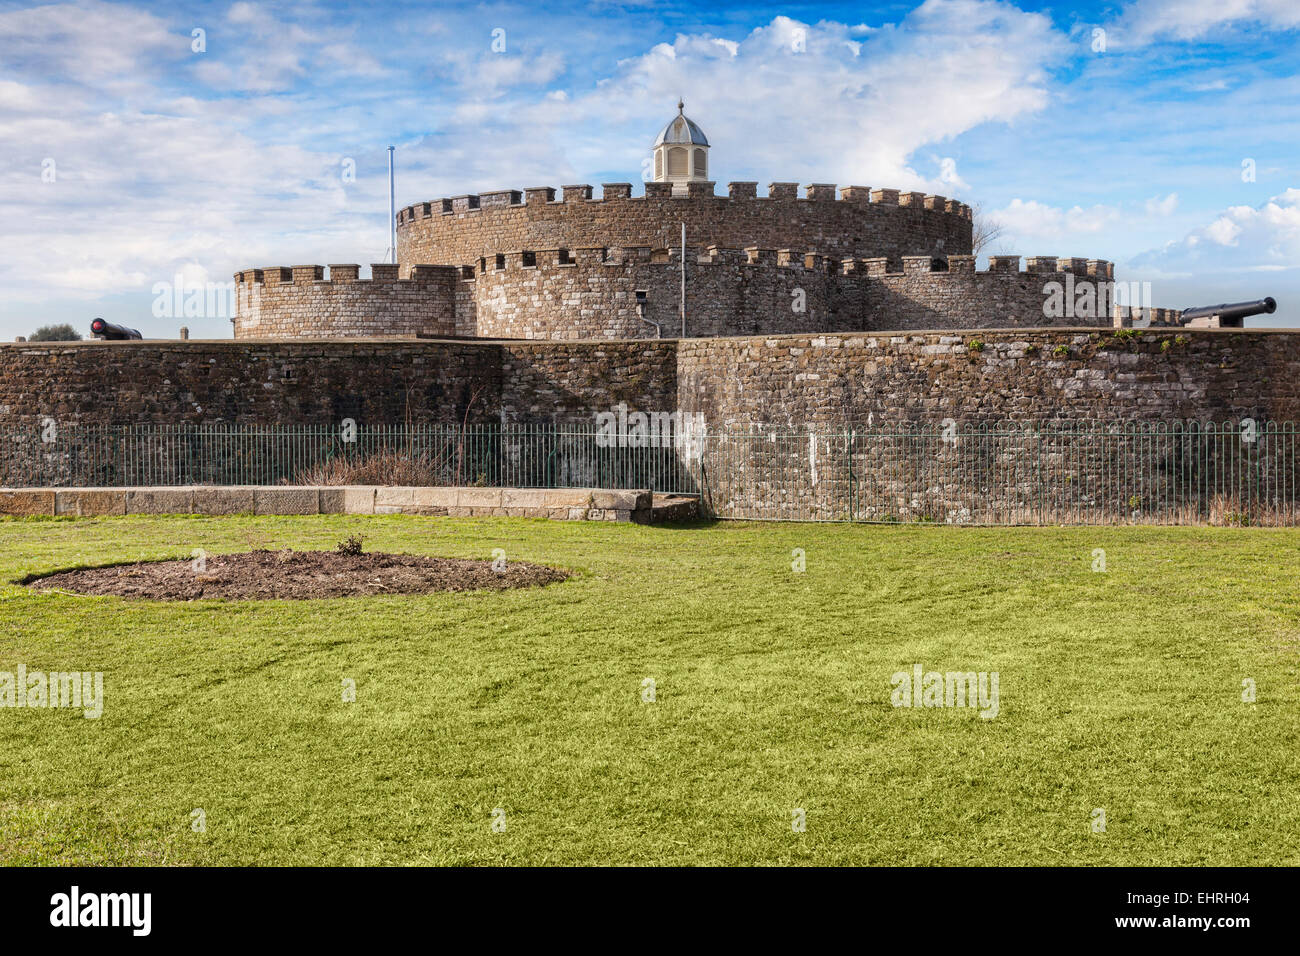 Deal Castle, Kent, England, UK, was built on the orders of Henry VIII and opened in 1540. - Stock Image